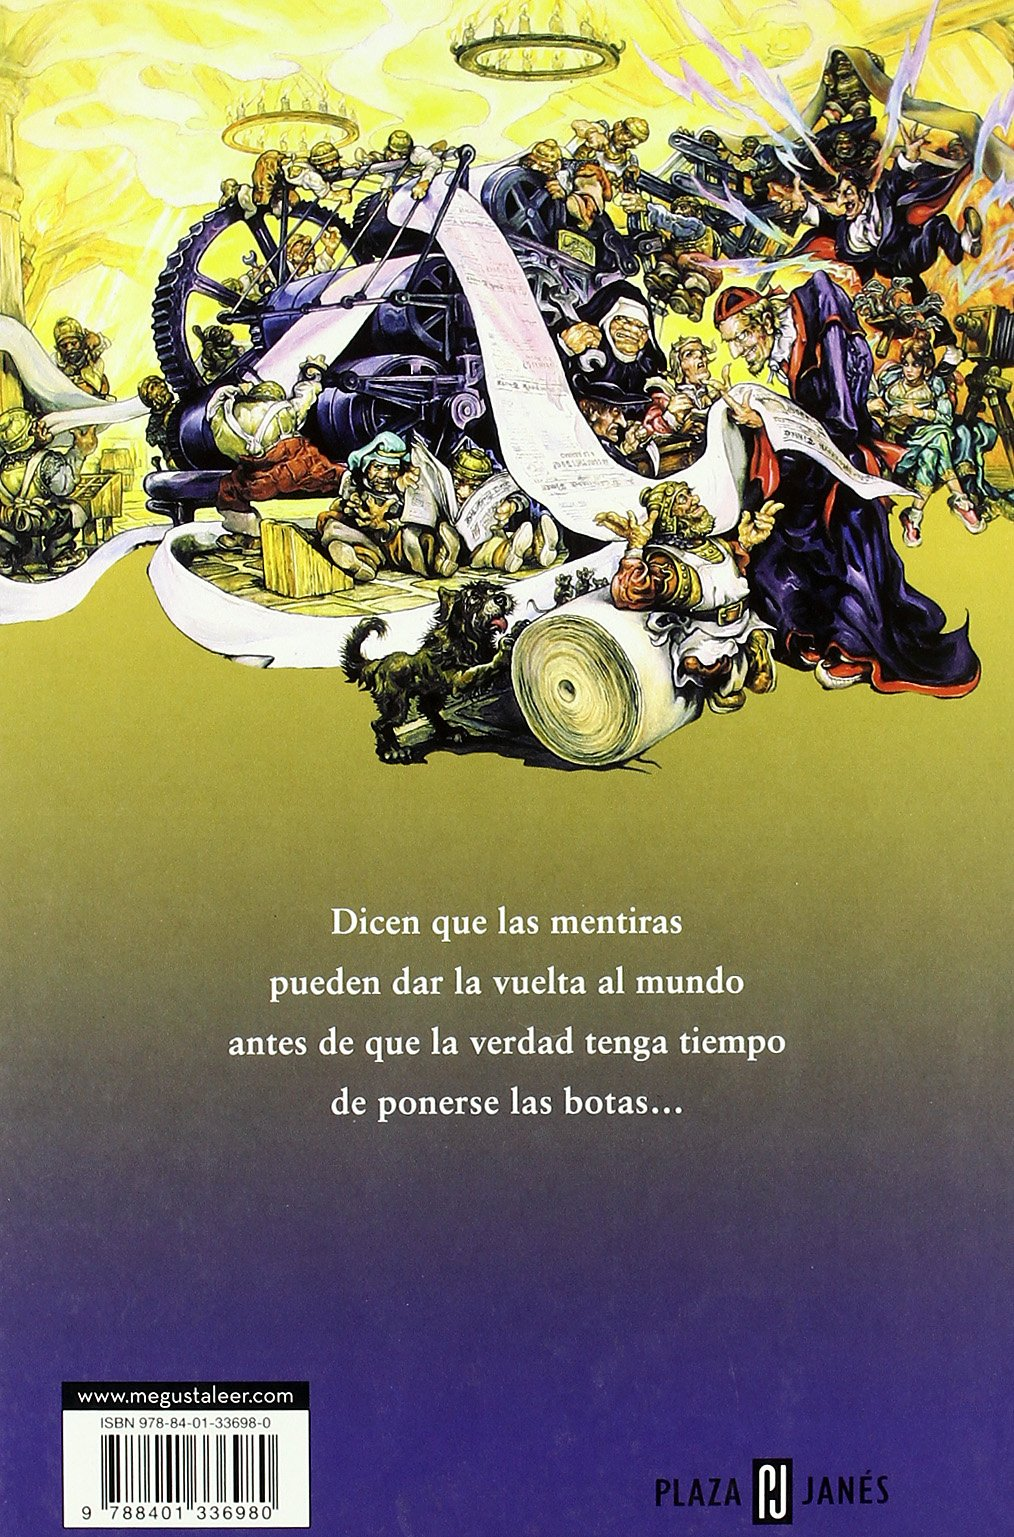 Amazon.com: La verdad / The Truth: La XXV novela del Mundodisco / The XXV Novel of Discworld (Mundodisco / Discworld) (Spanish Edition) (9788401336980): ...